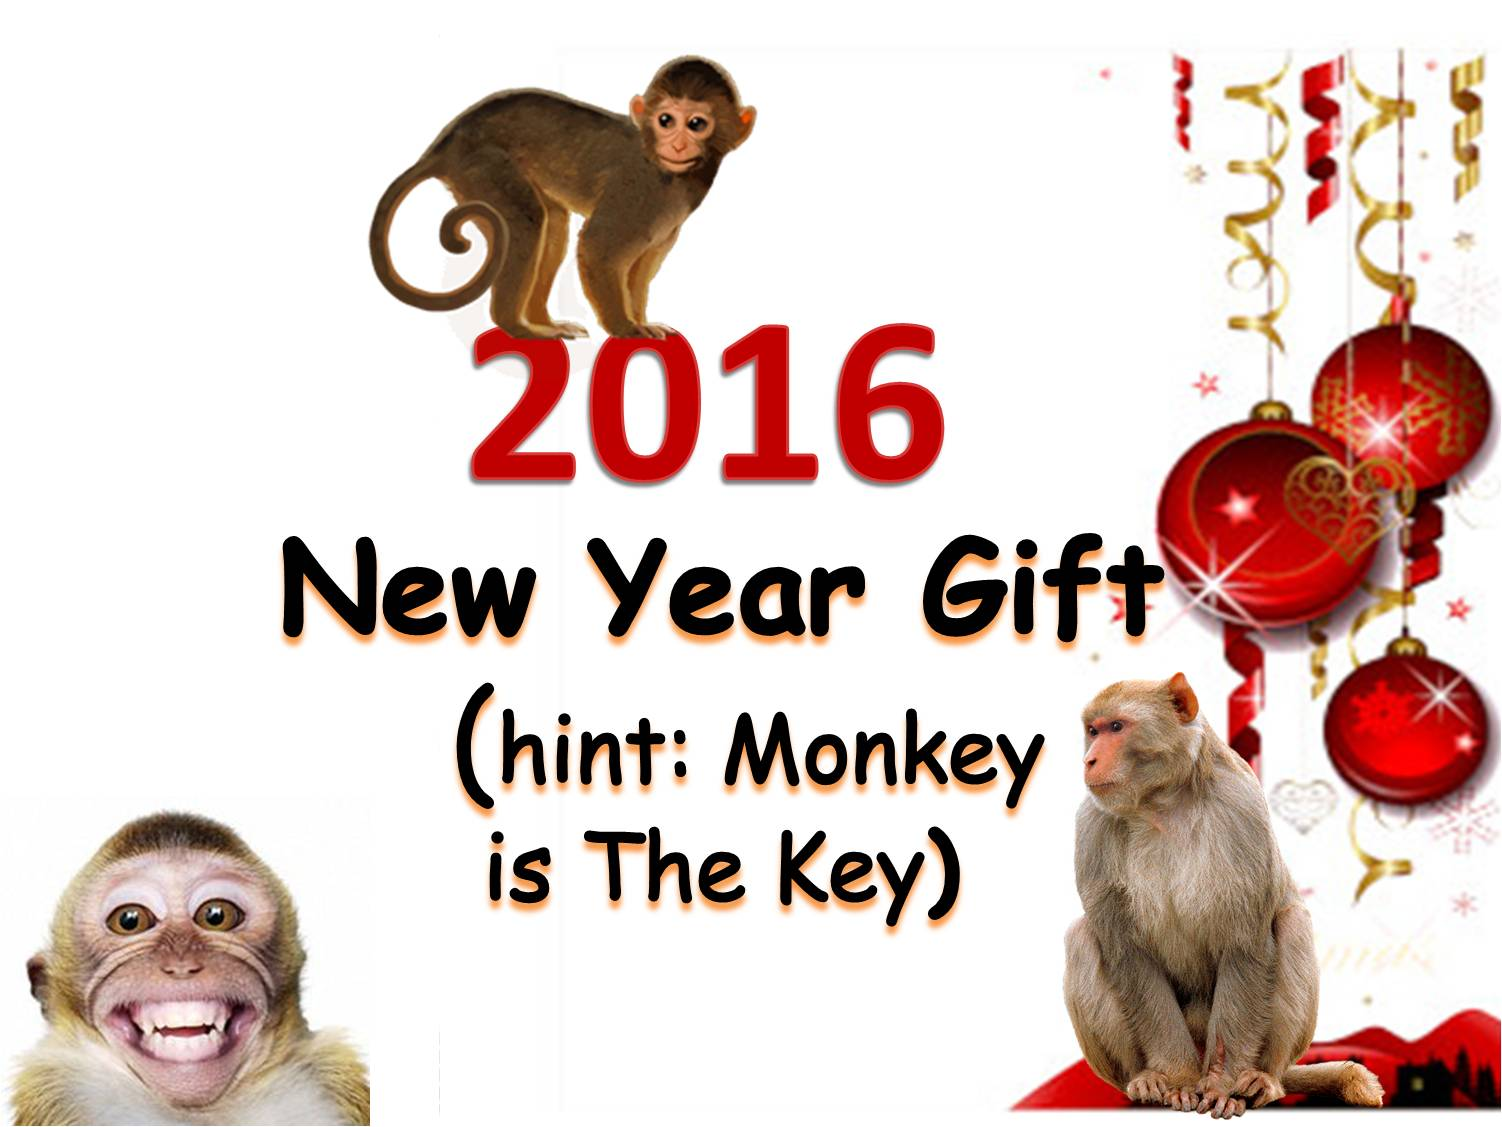 Best gift idea new year gift idea 2016 monkey is the key - Best new year gift ideas ...